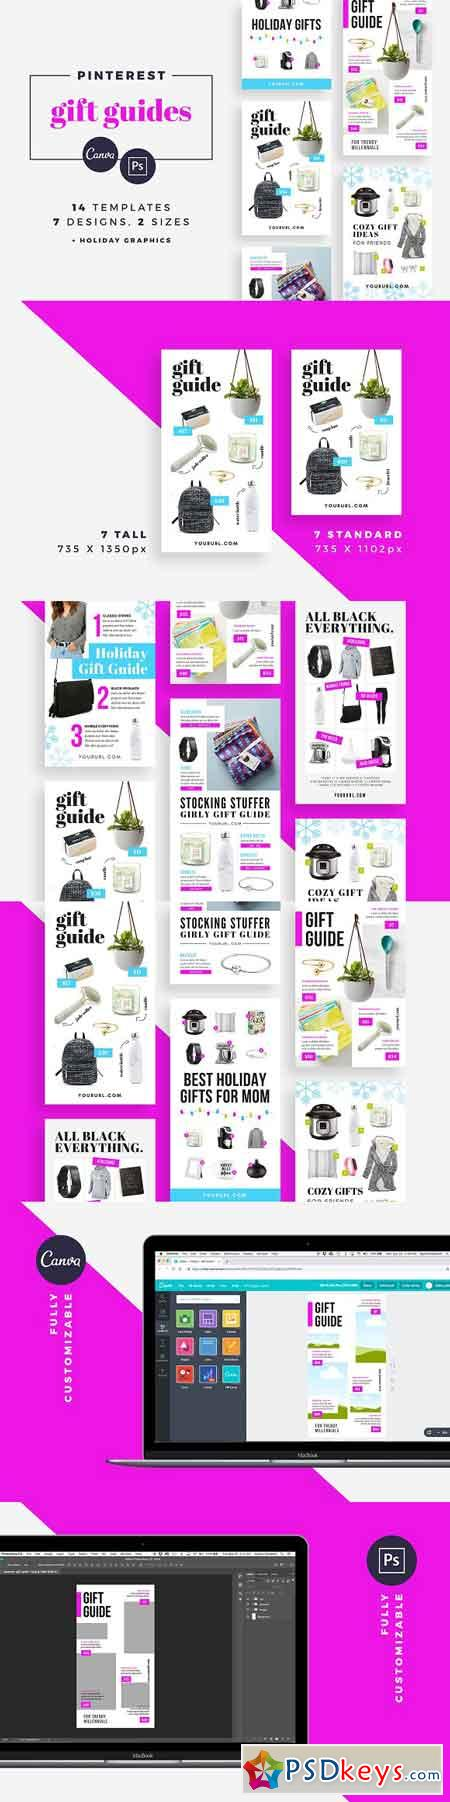 Gift Guide Pinterest Templates 2974832